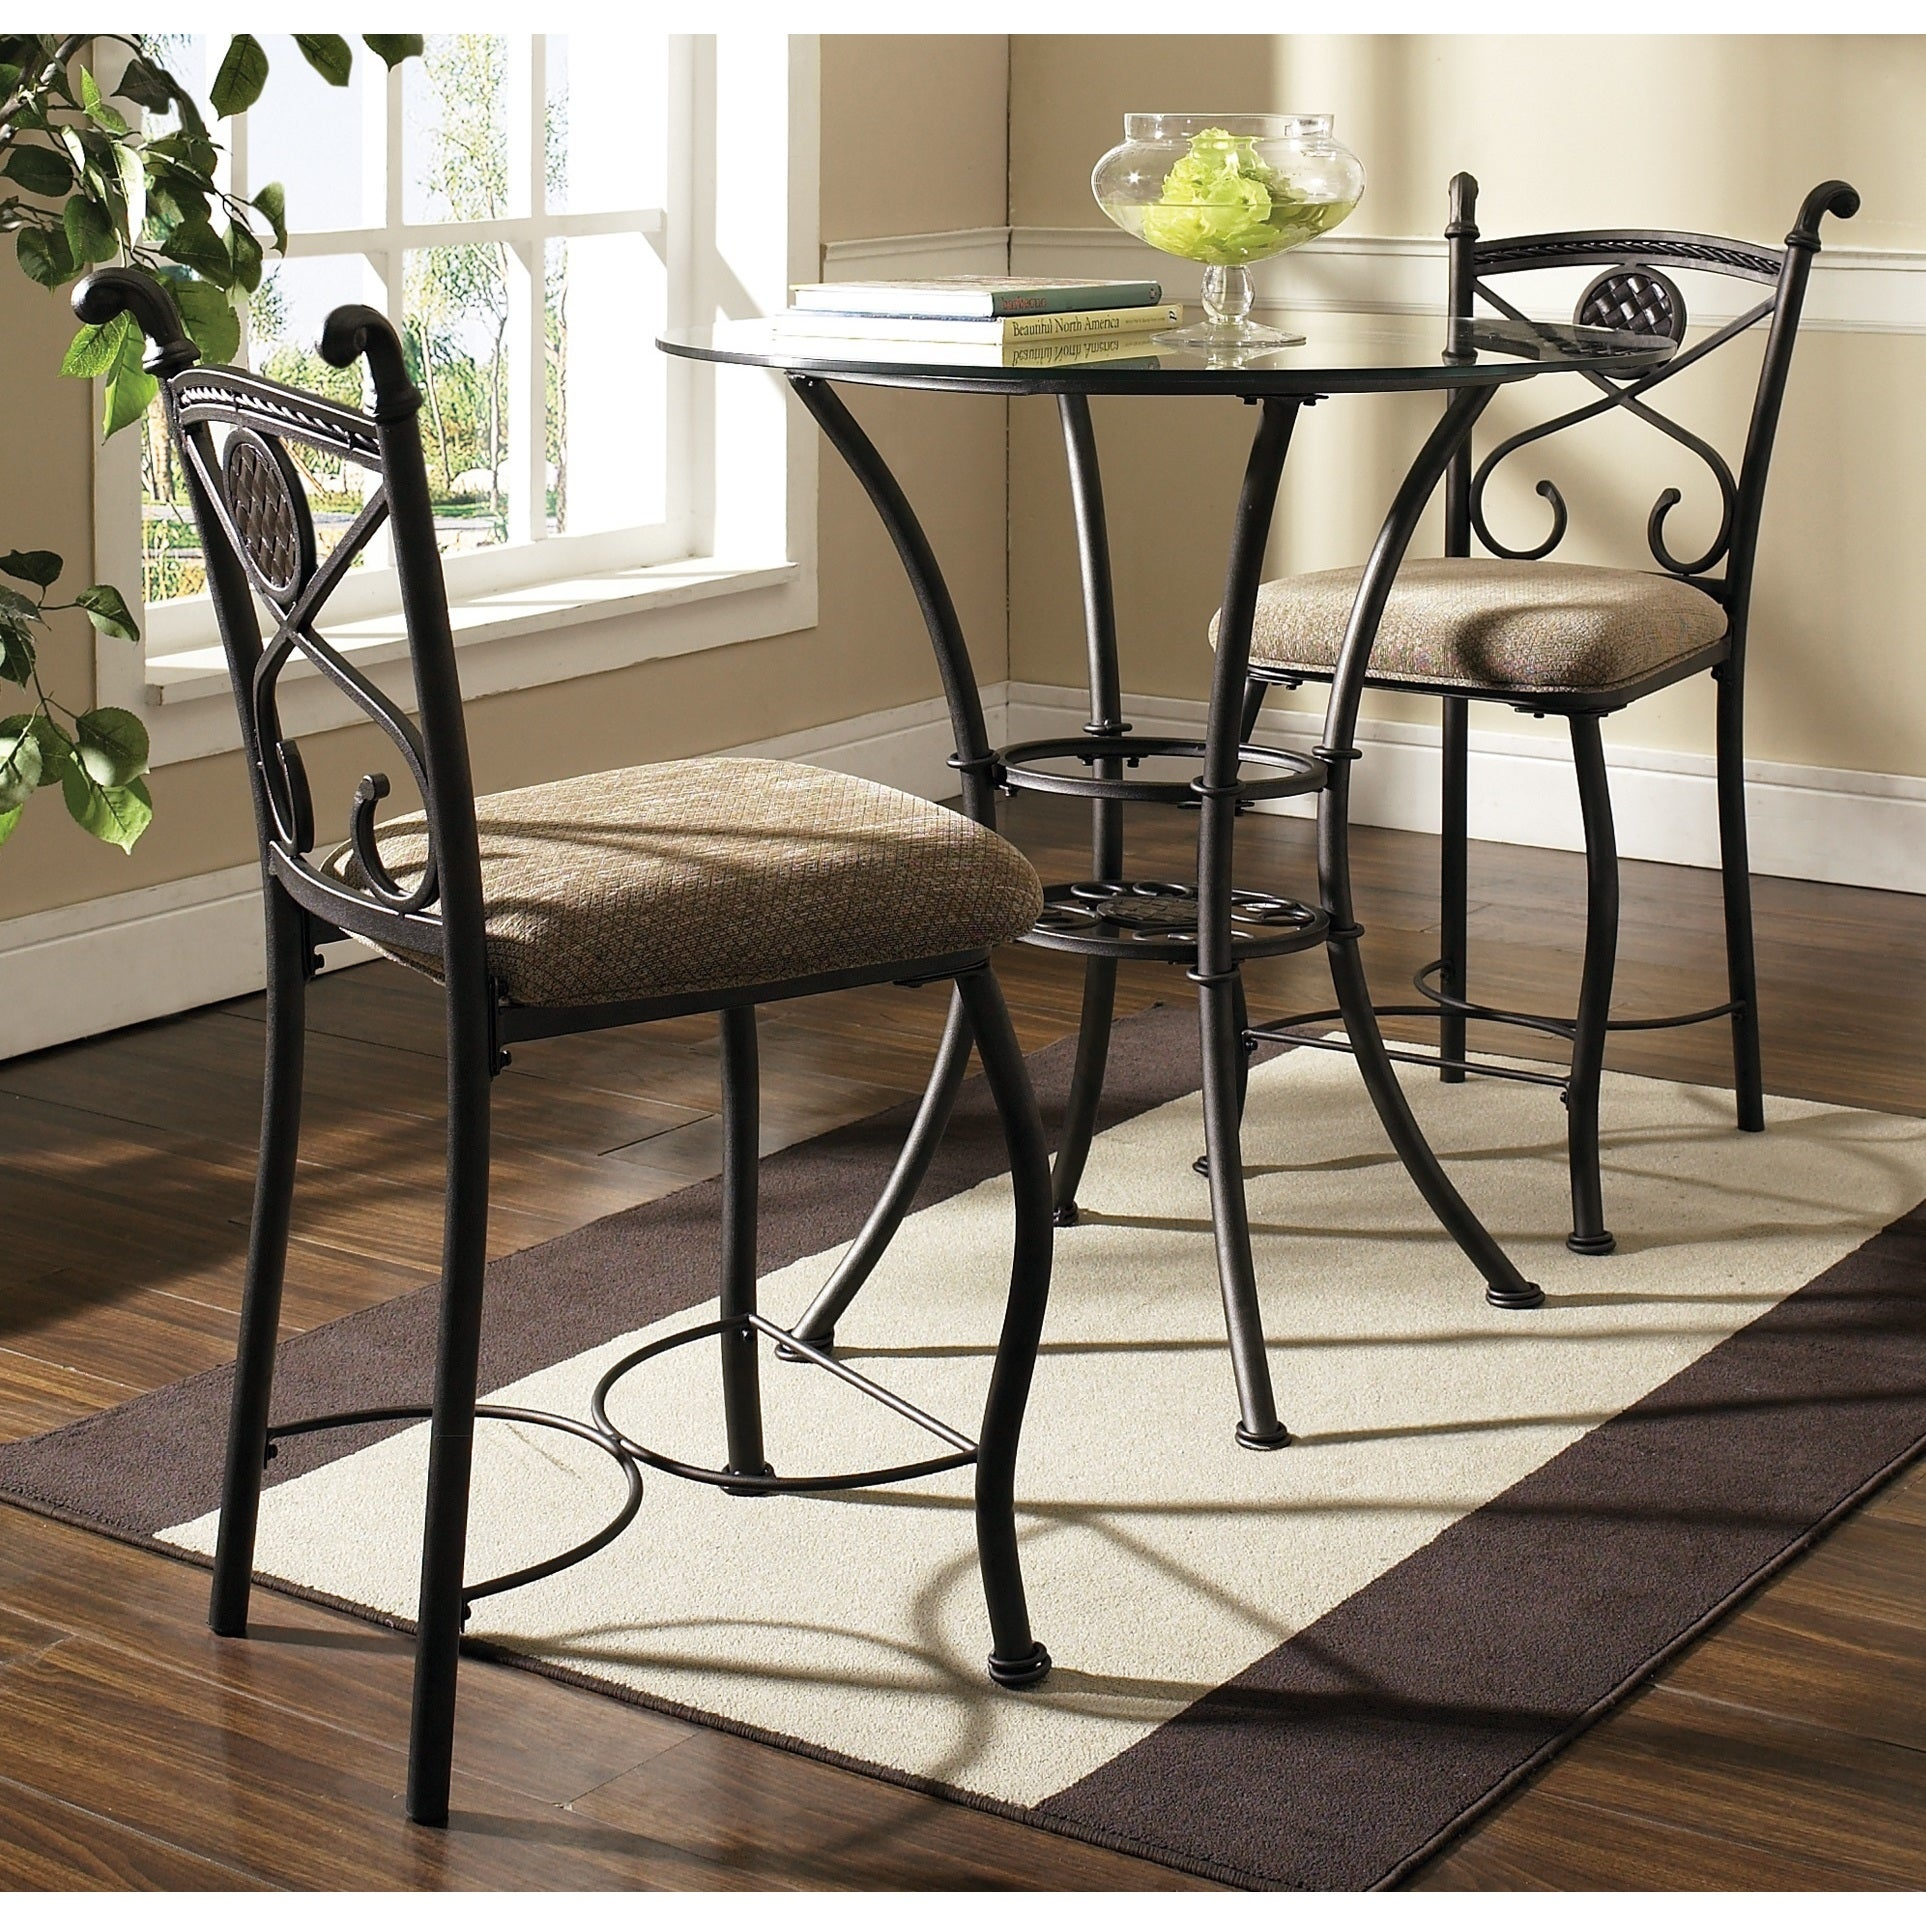 Browning Dark Brown and Beige-upholstered Pub Table Set b...